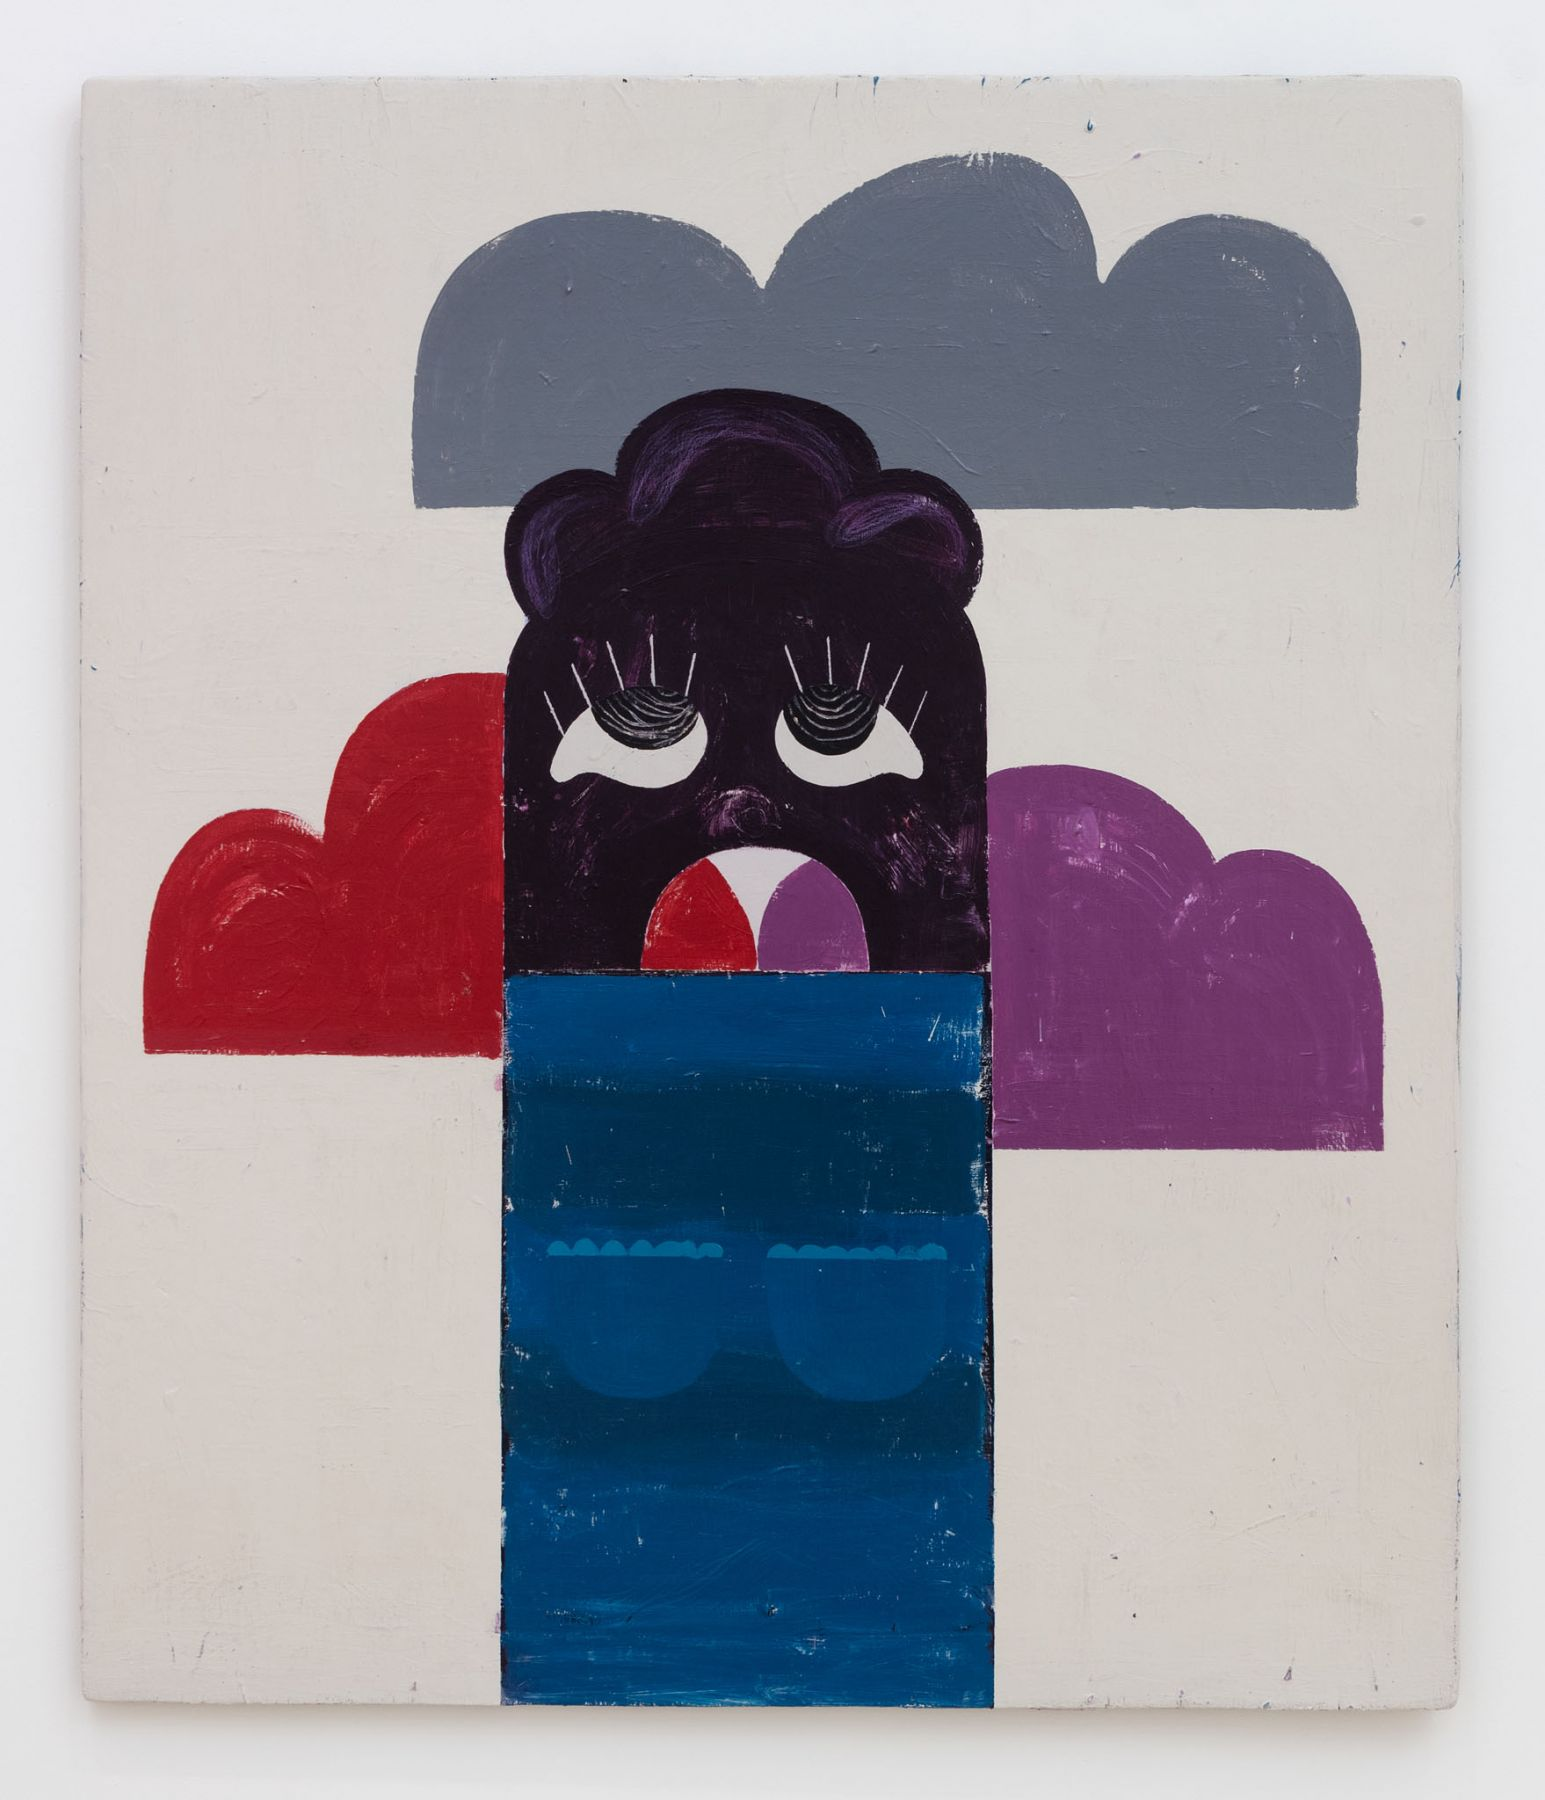 Nel Aerts The cloud guzzler (De wolken vreter), 2016 Acrylic and coloured pencil on wood 144.5 x 122 cm (NA101)